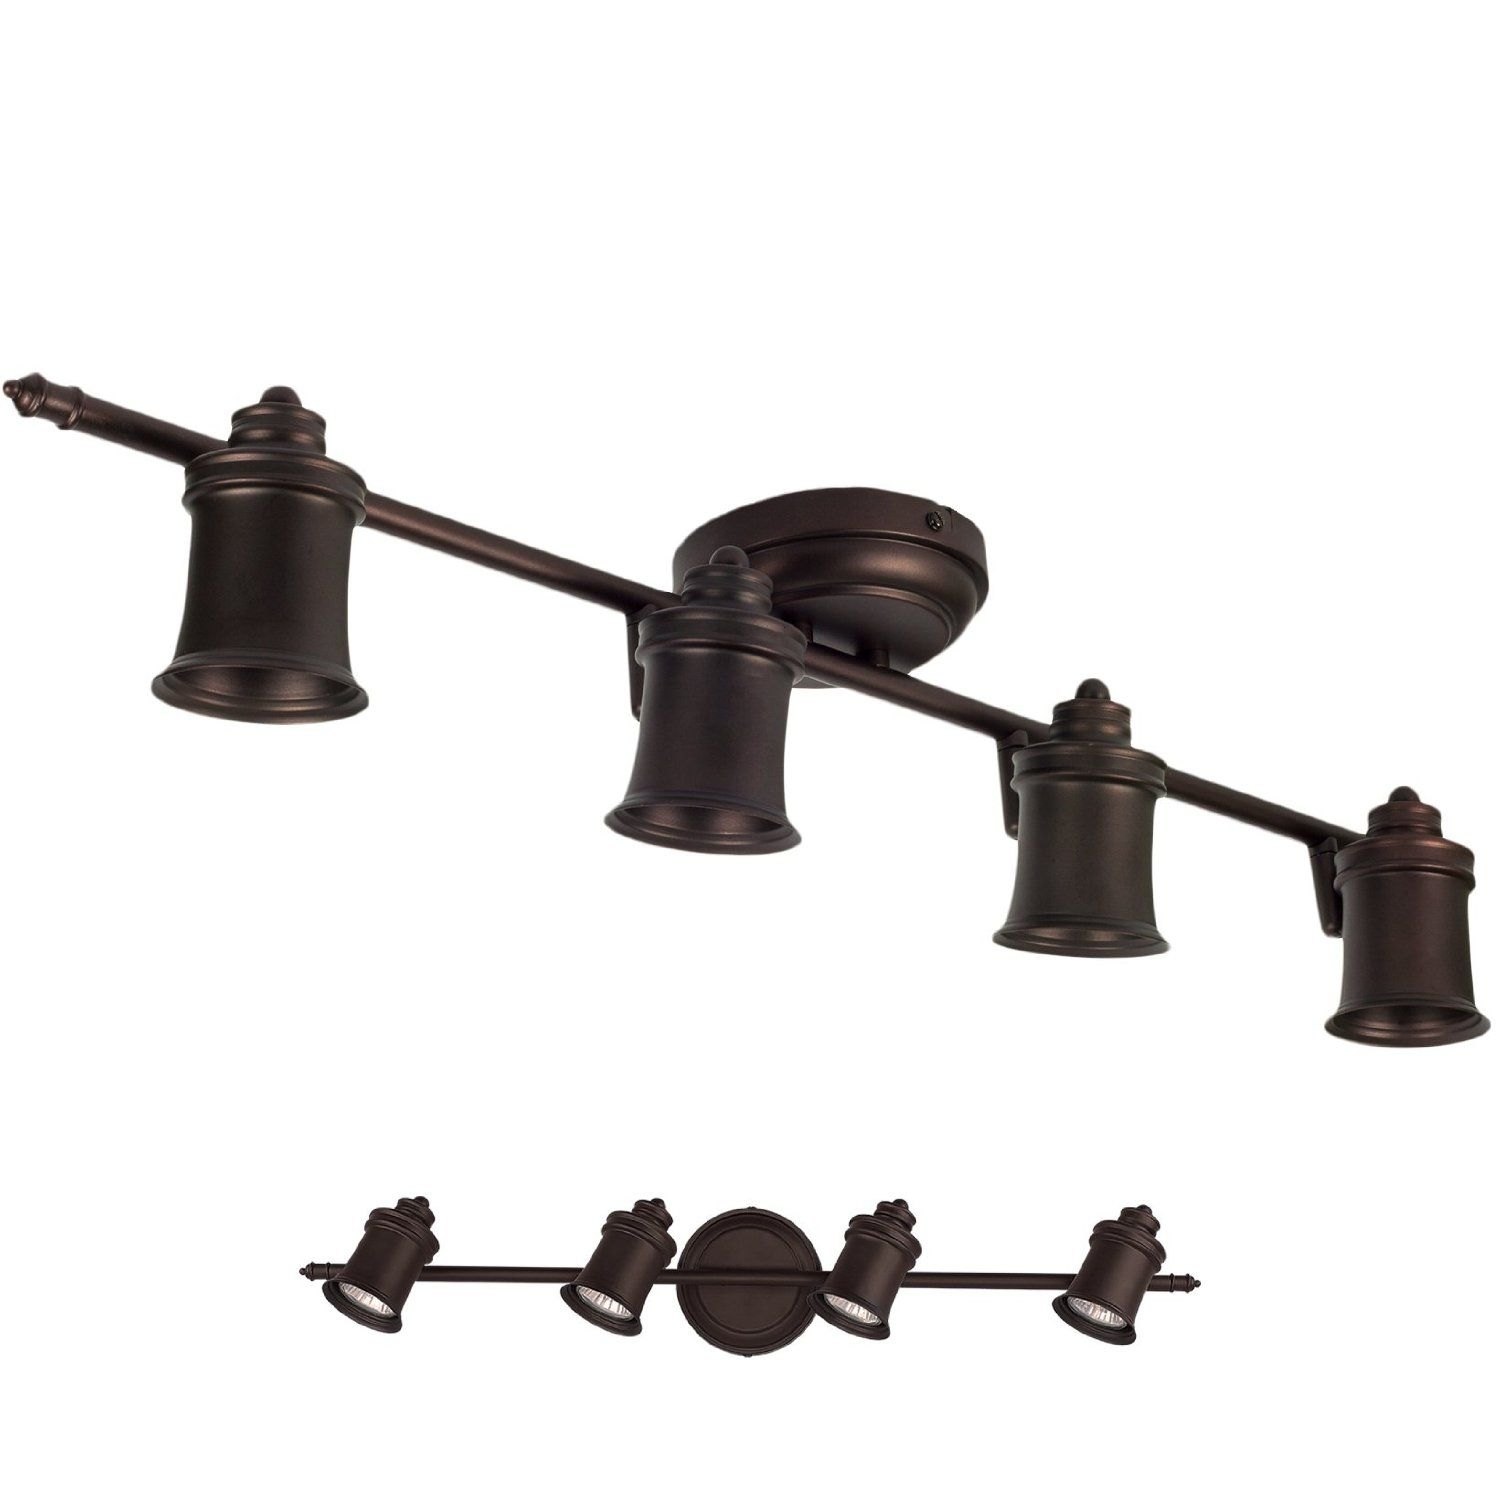 wall mounted track lighting. Oil Rubbed Bronze 4 Light Track Lighting Wall \u0026 Ceiling Mount Fixture - Amazon. Mounted